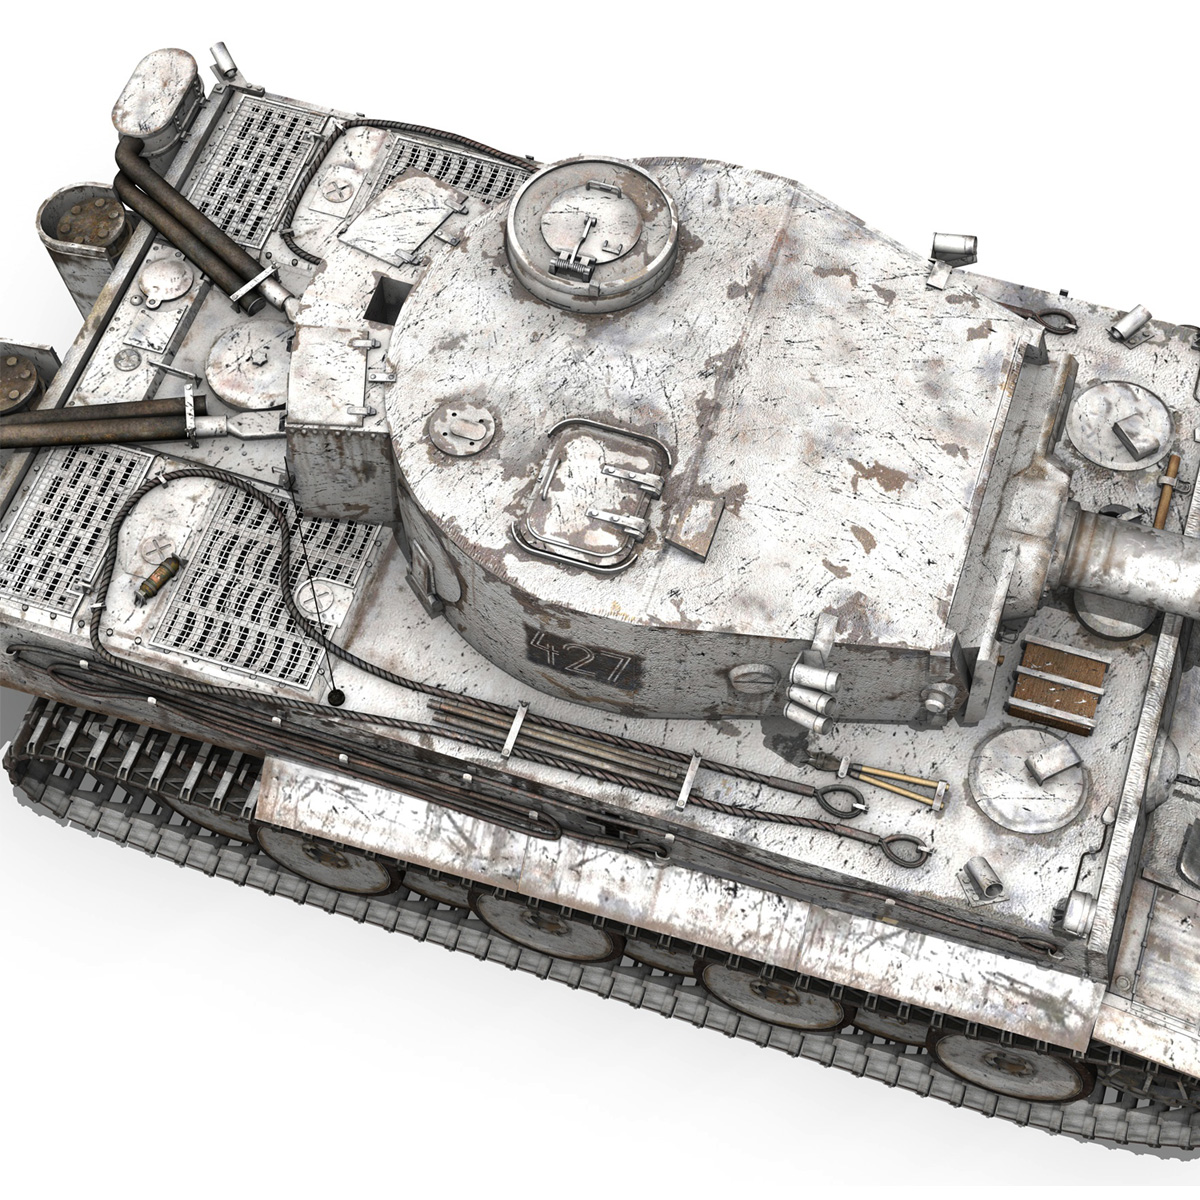 Panzer VI - Tiger - 427 - Early Production 3d model 3ds c4d lwo lws lw obj 273744